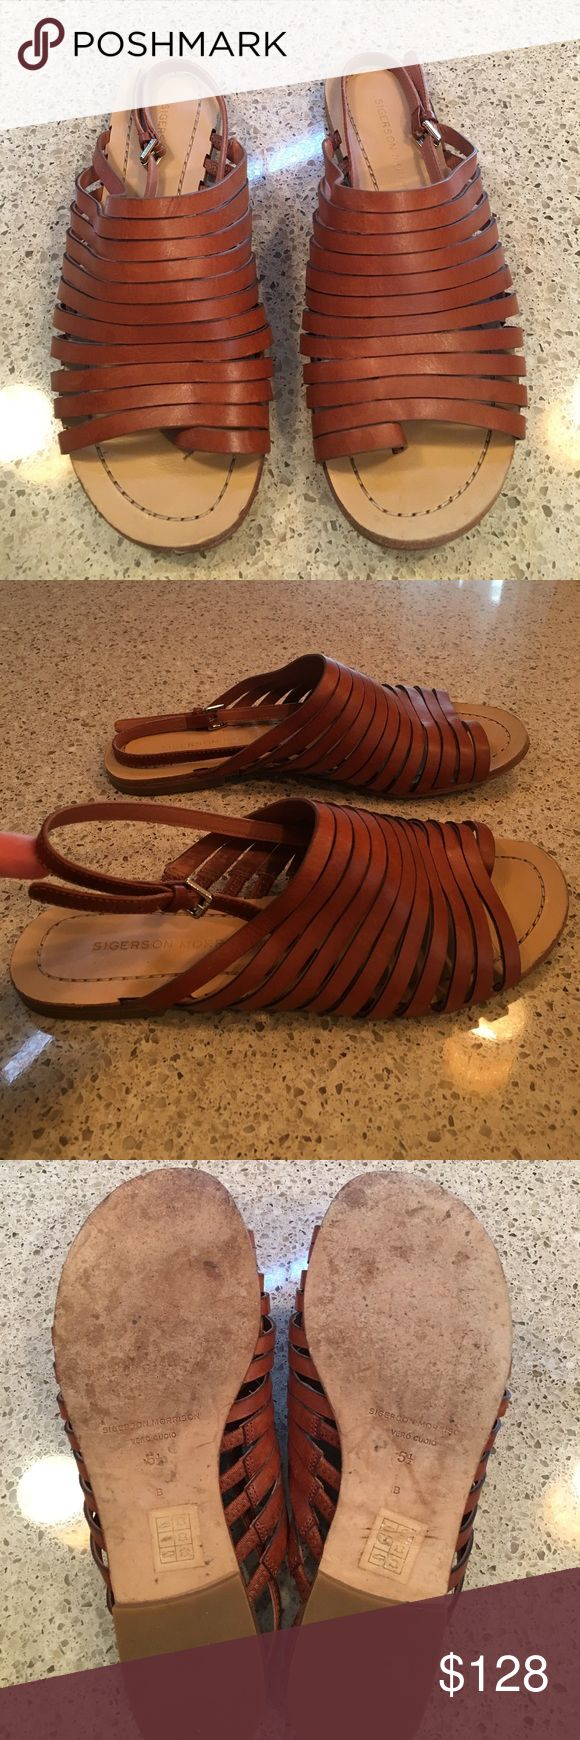 "Sigerson Morrison leather sandal size 5.5 Sigerson Morrison caramel brown leather sandal size 5.5. Adjustable heel strap. Heel height is 1/2"".  Very good condition. Sigerson Morrison Shoes Sandals"